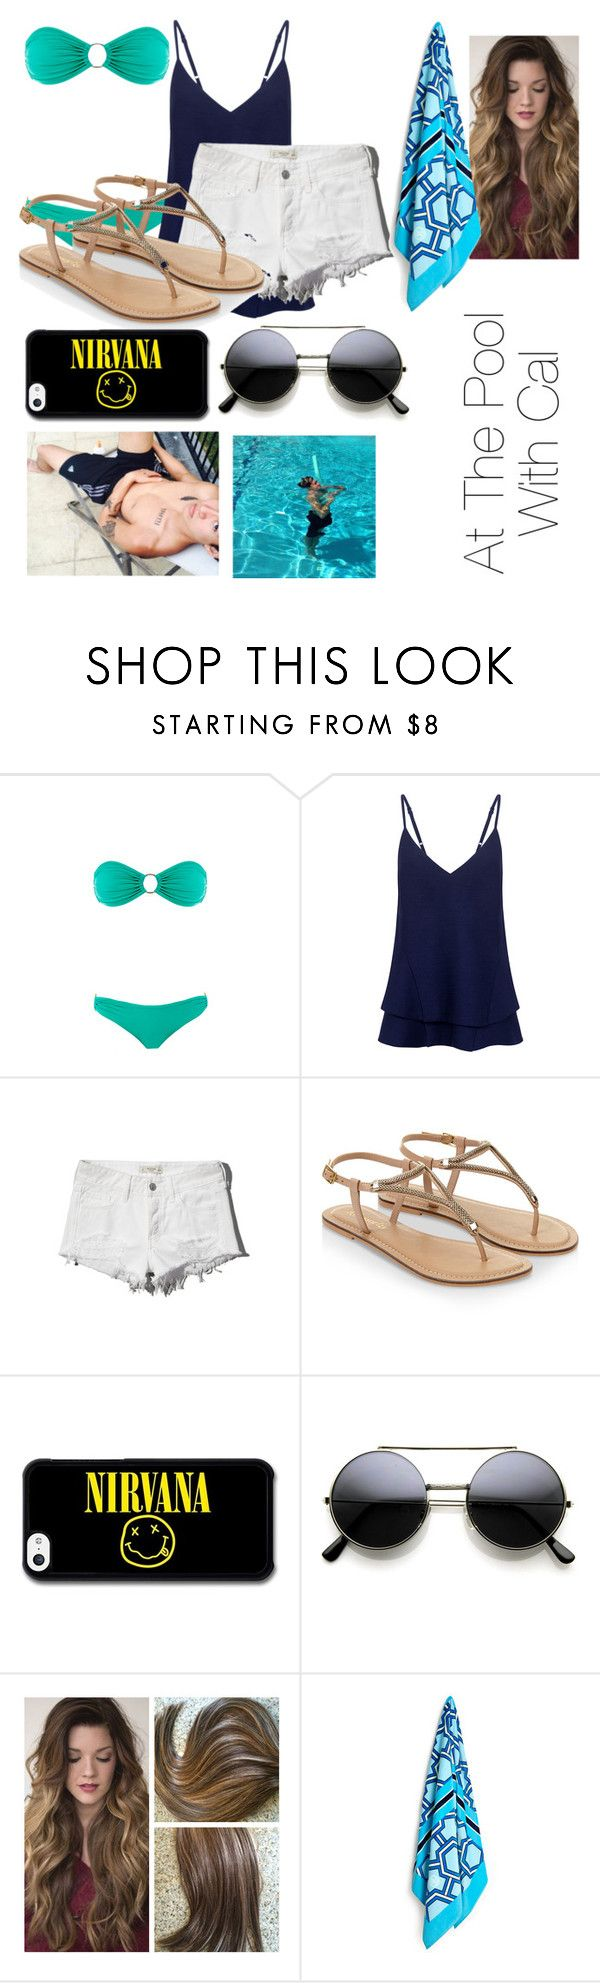 """""""At the pool w/ Calum"""" by lovescalumhood ❤ liked on Polyvore featuring Melissa Odabash, C/MEO COLLECTIVE, Abercrombie & Fitch, Accessorize, Jonathan Adler, women's clothing, women's fashion, women, female and woman"""